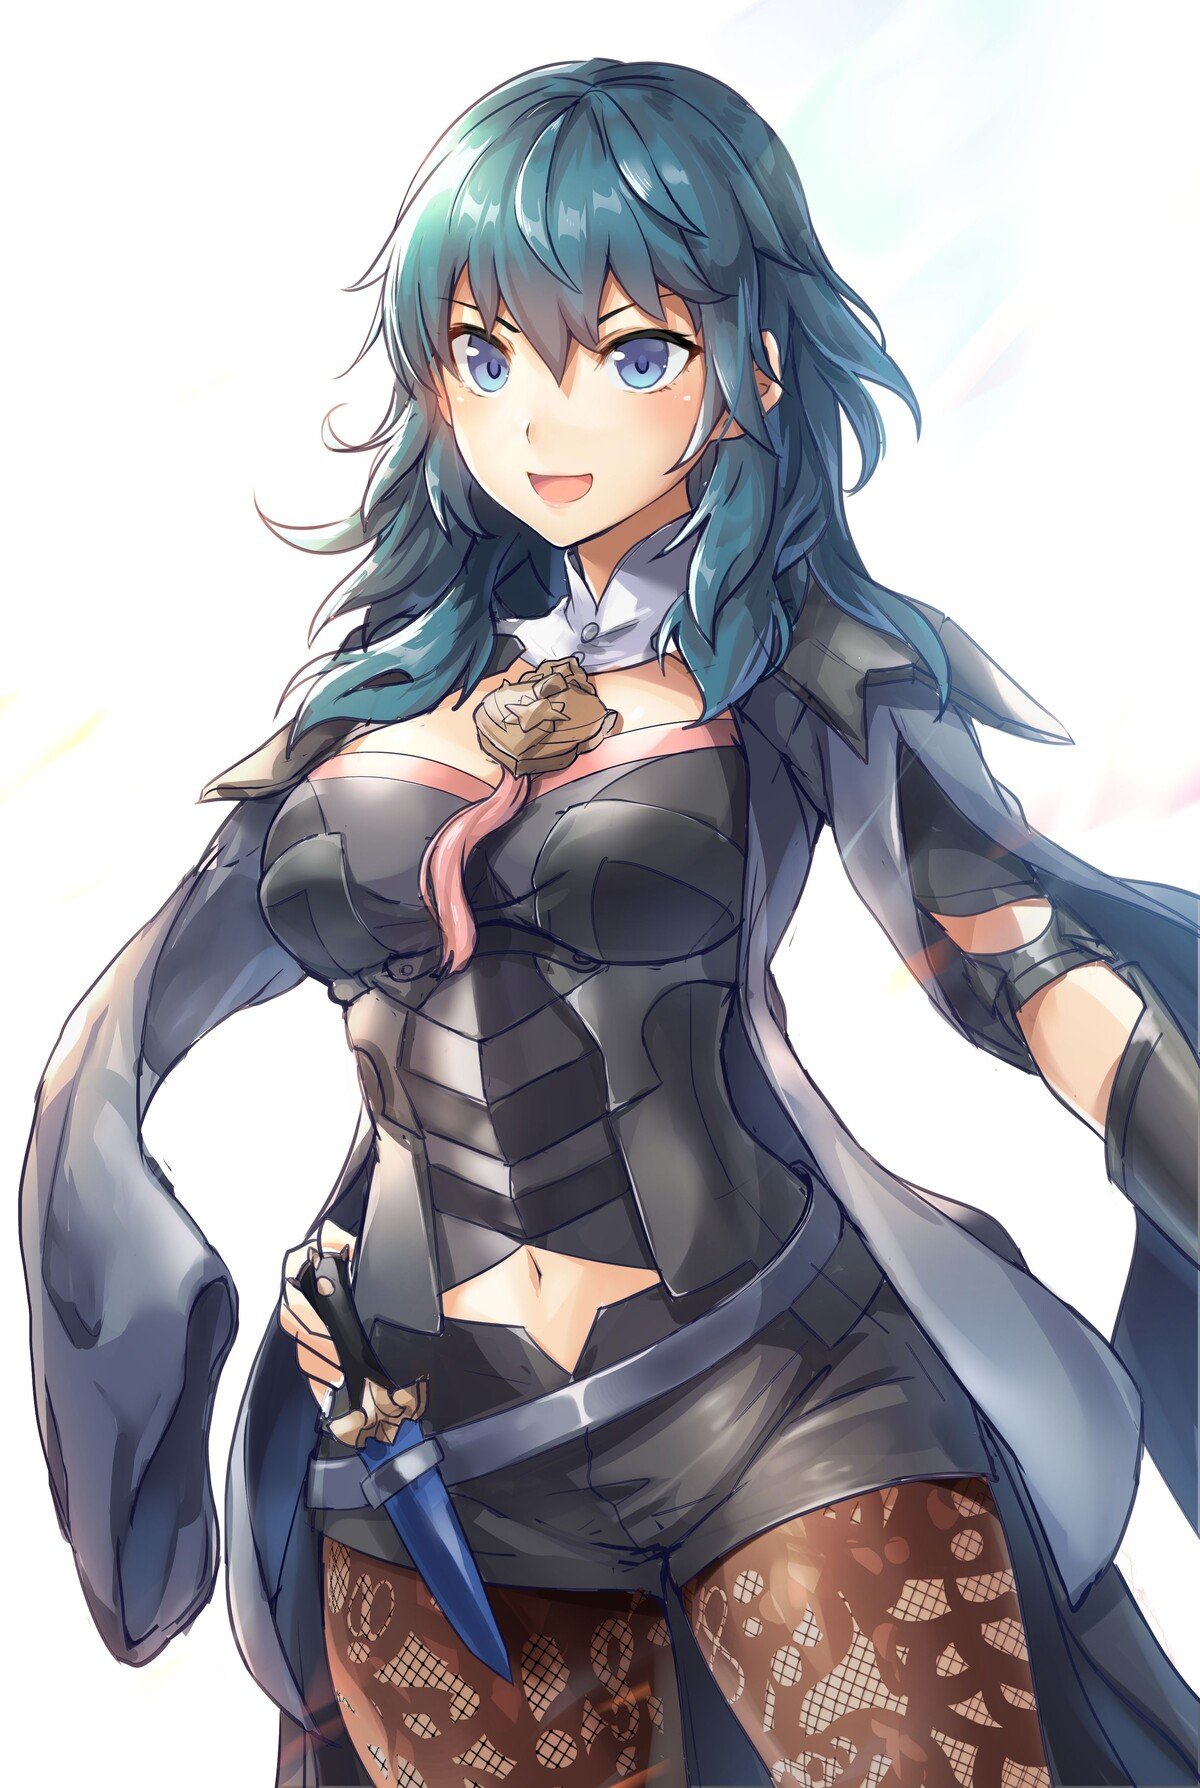 byleth_(fire_emblem)_(female)010